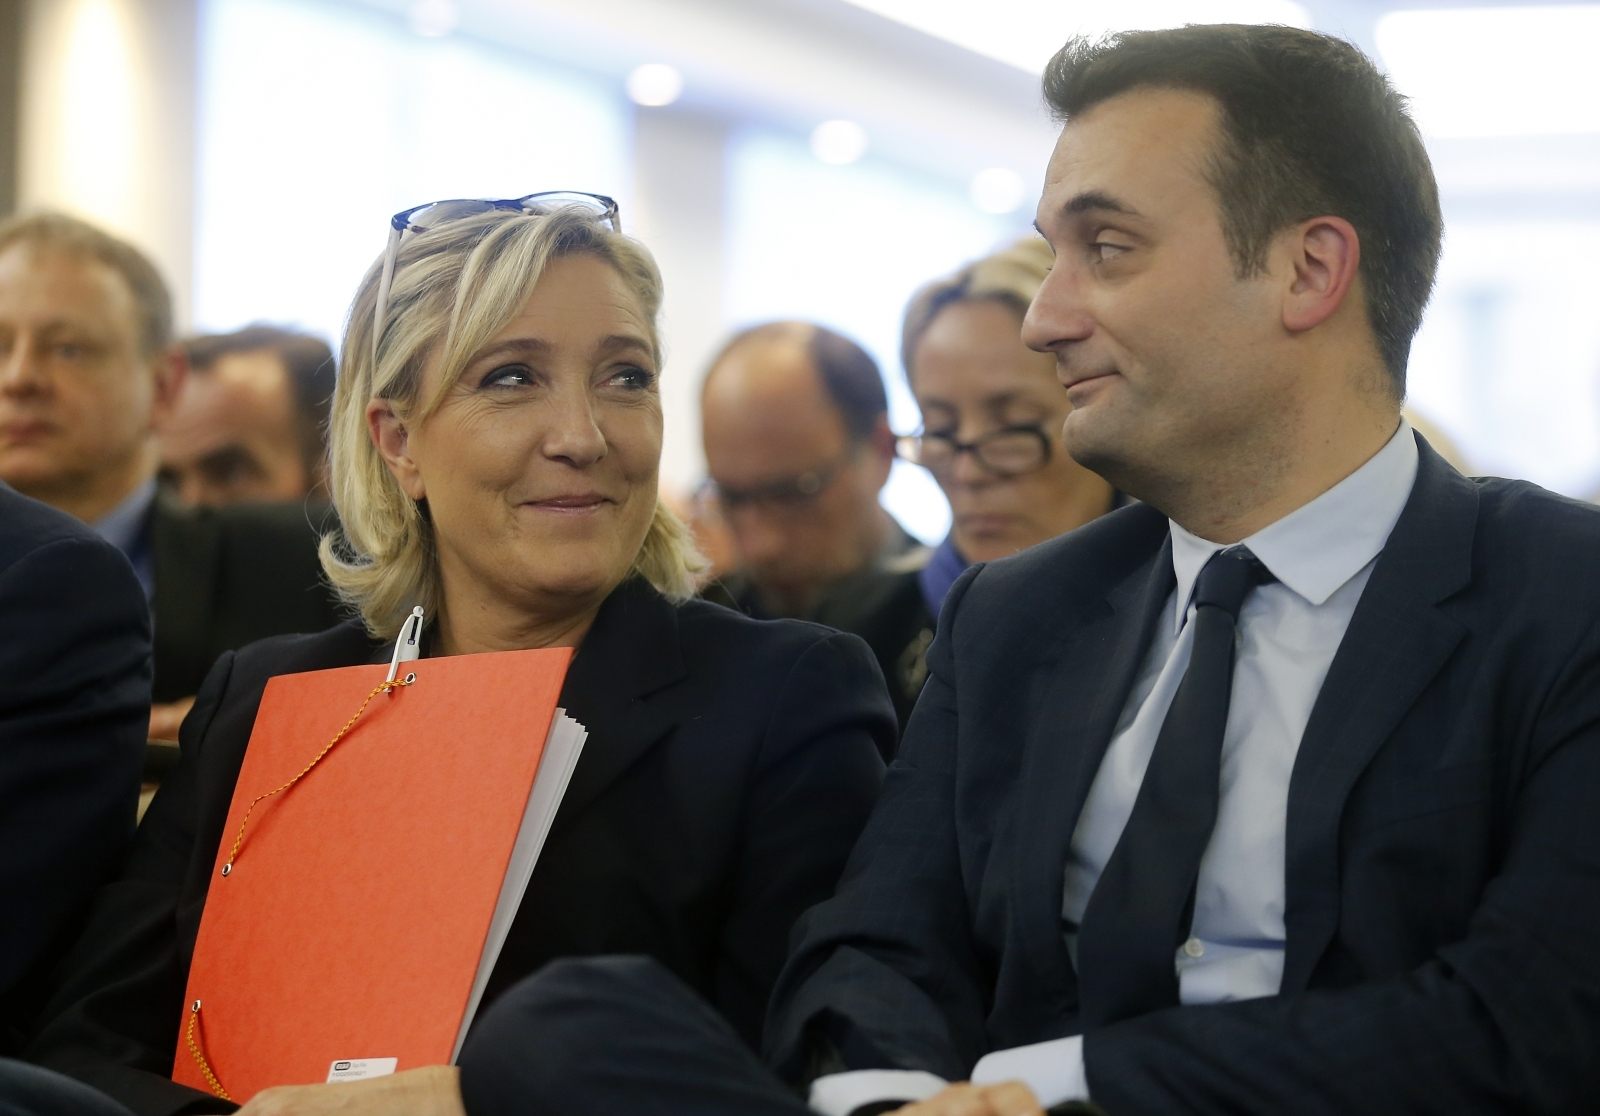 National Front leader Marine Le Pen (l) and her former right-hand man Florian Philippot at a conference last year (2016)